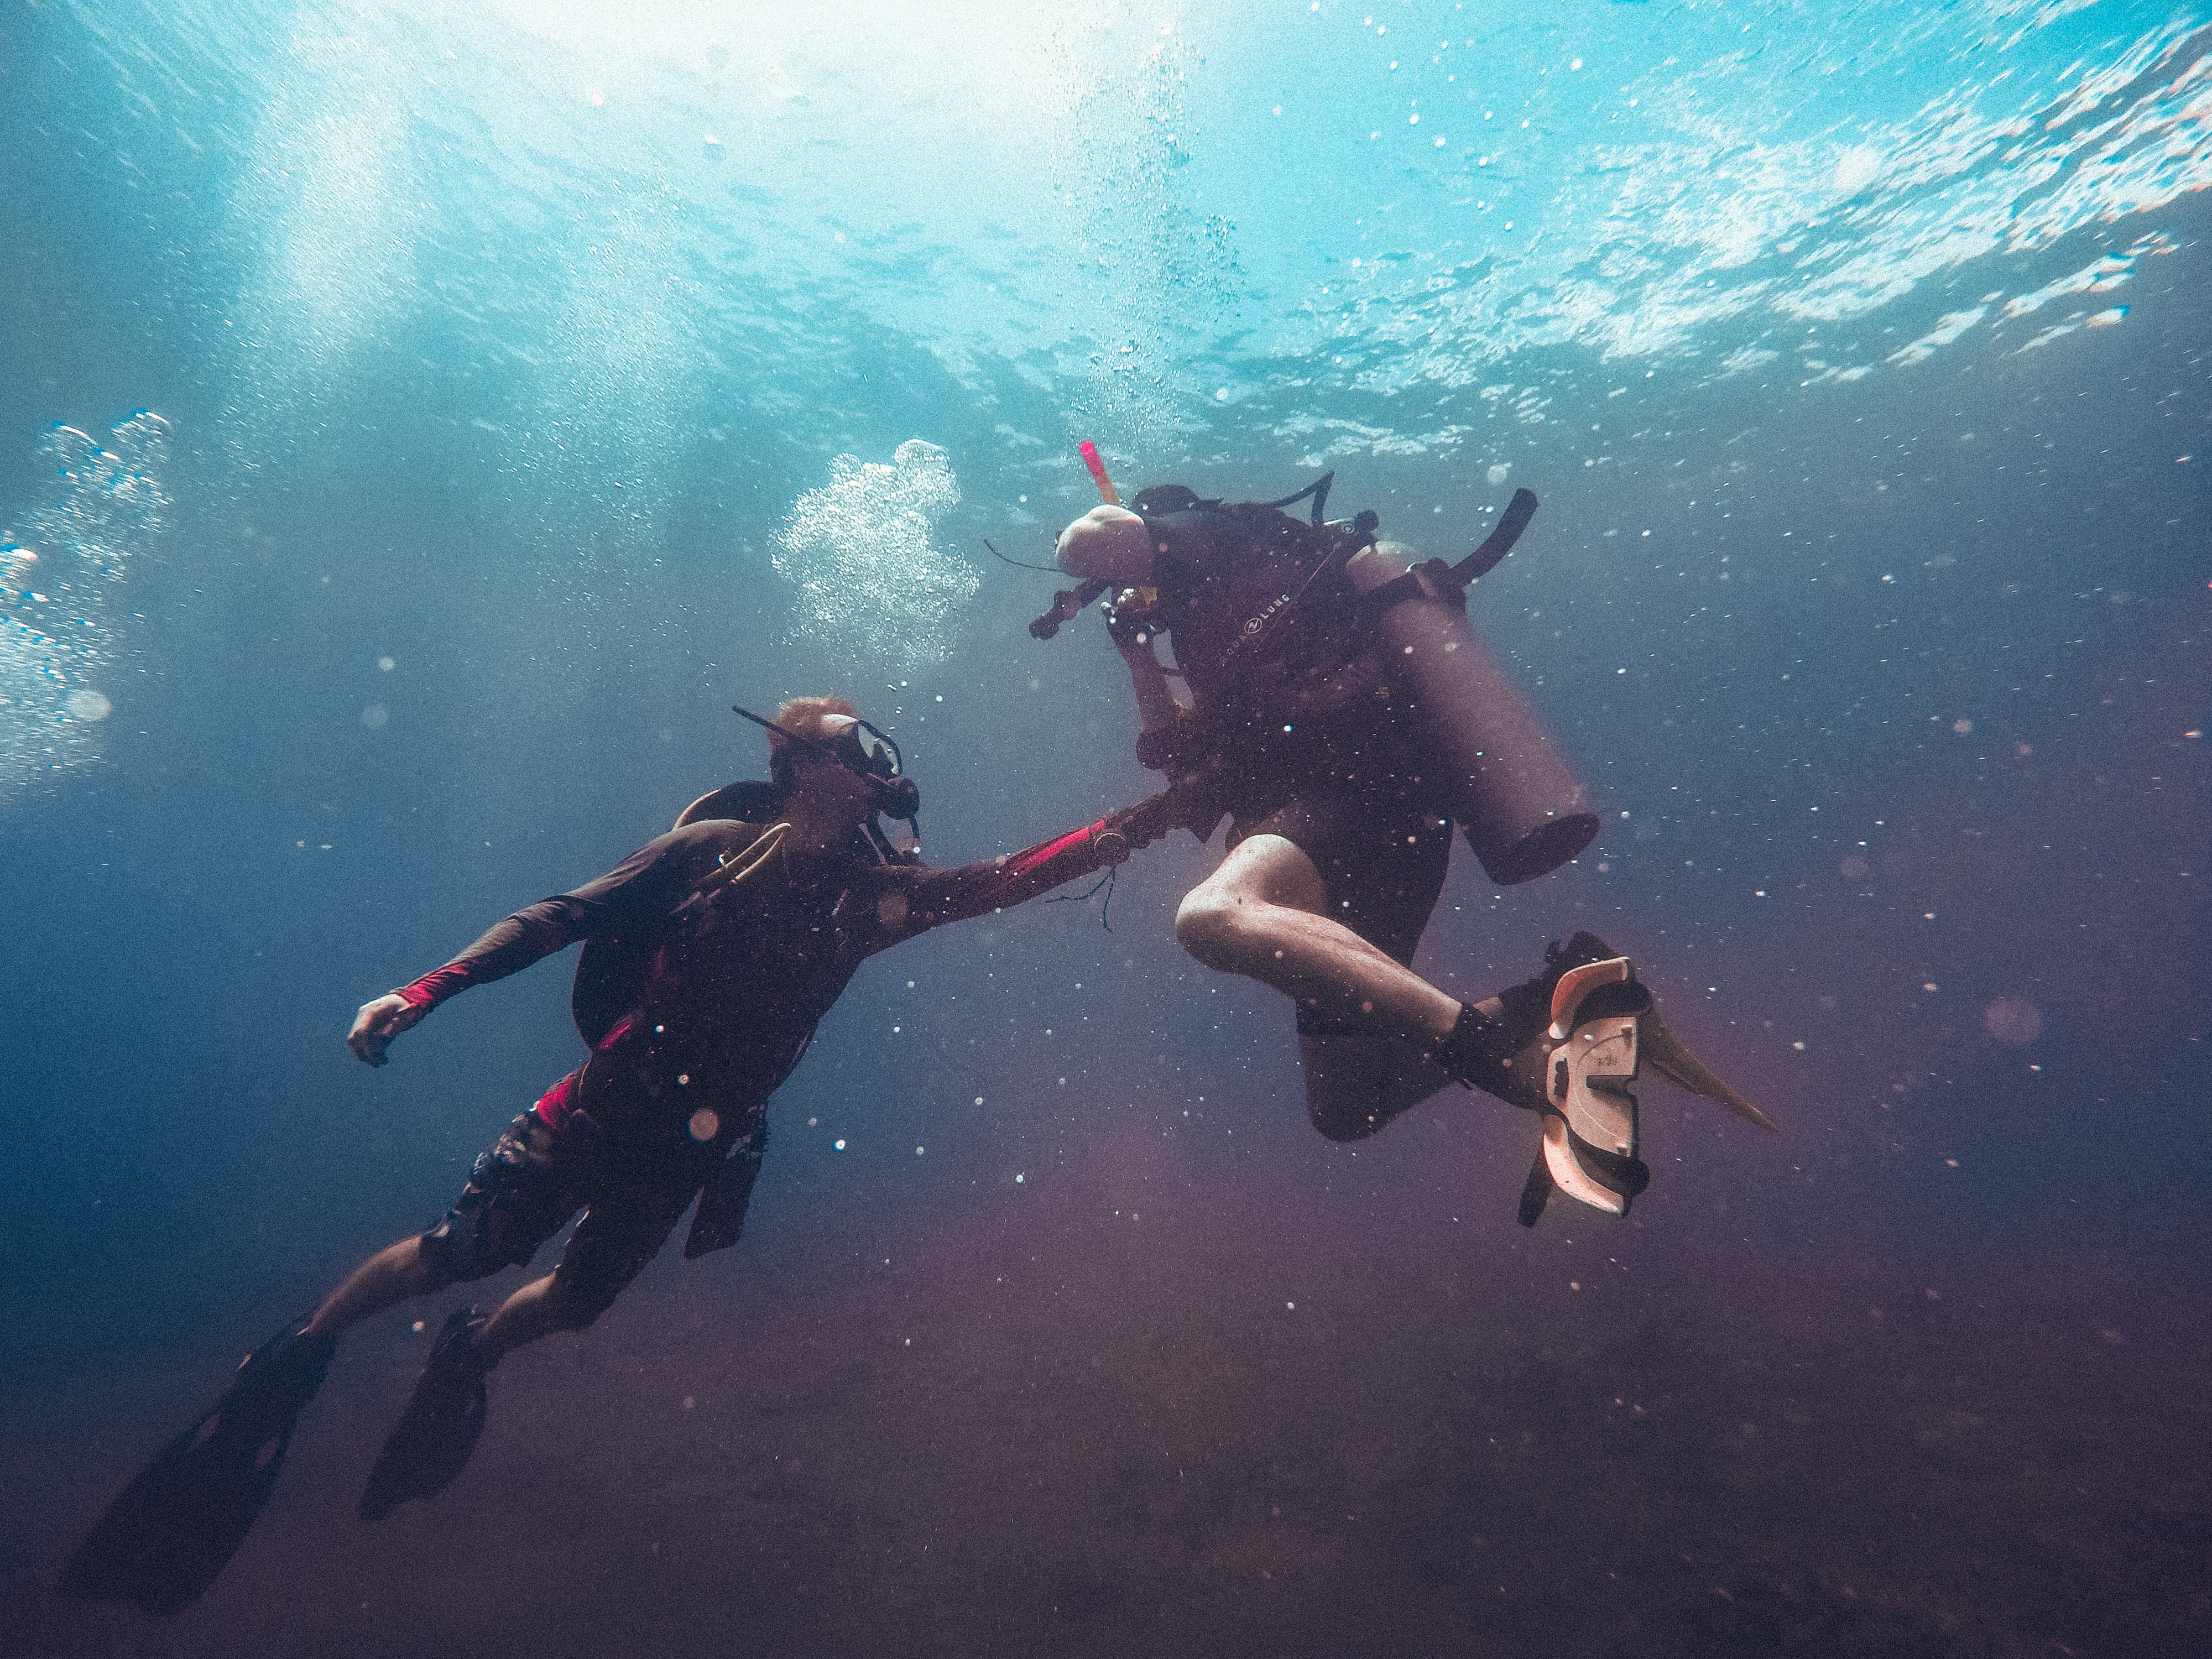 two person swimming underwater